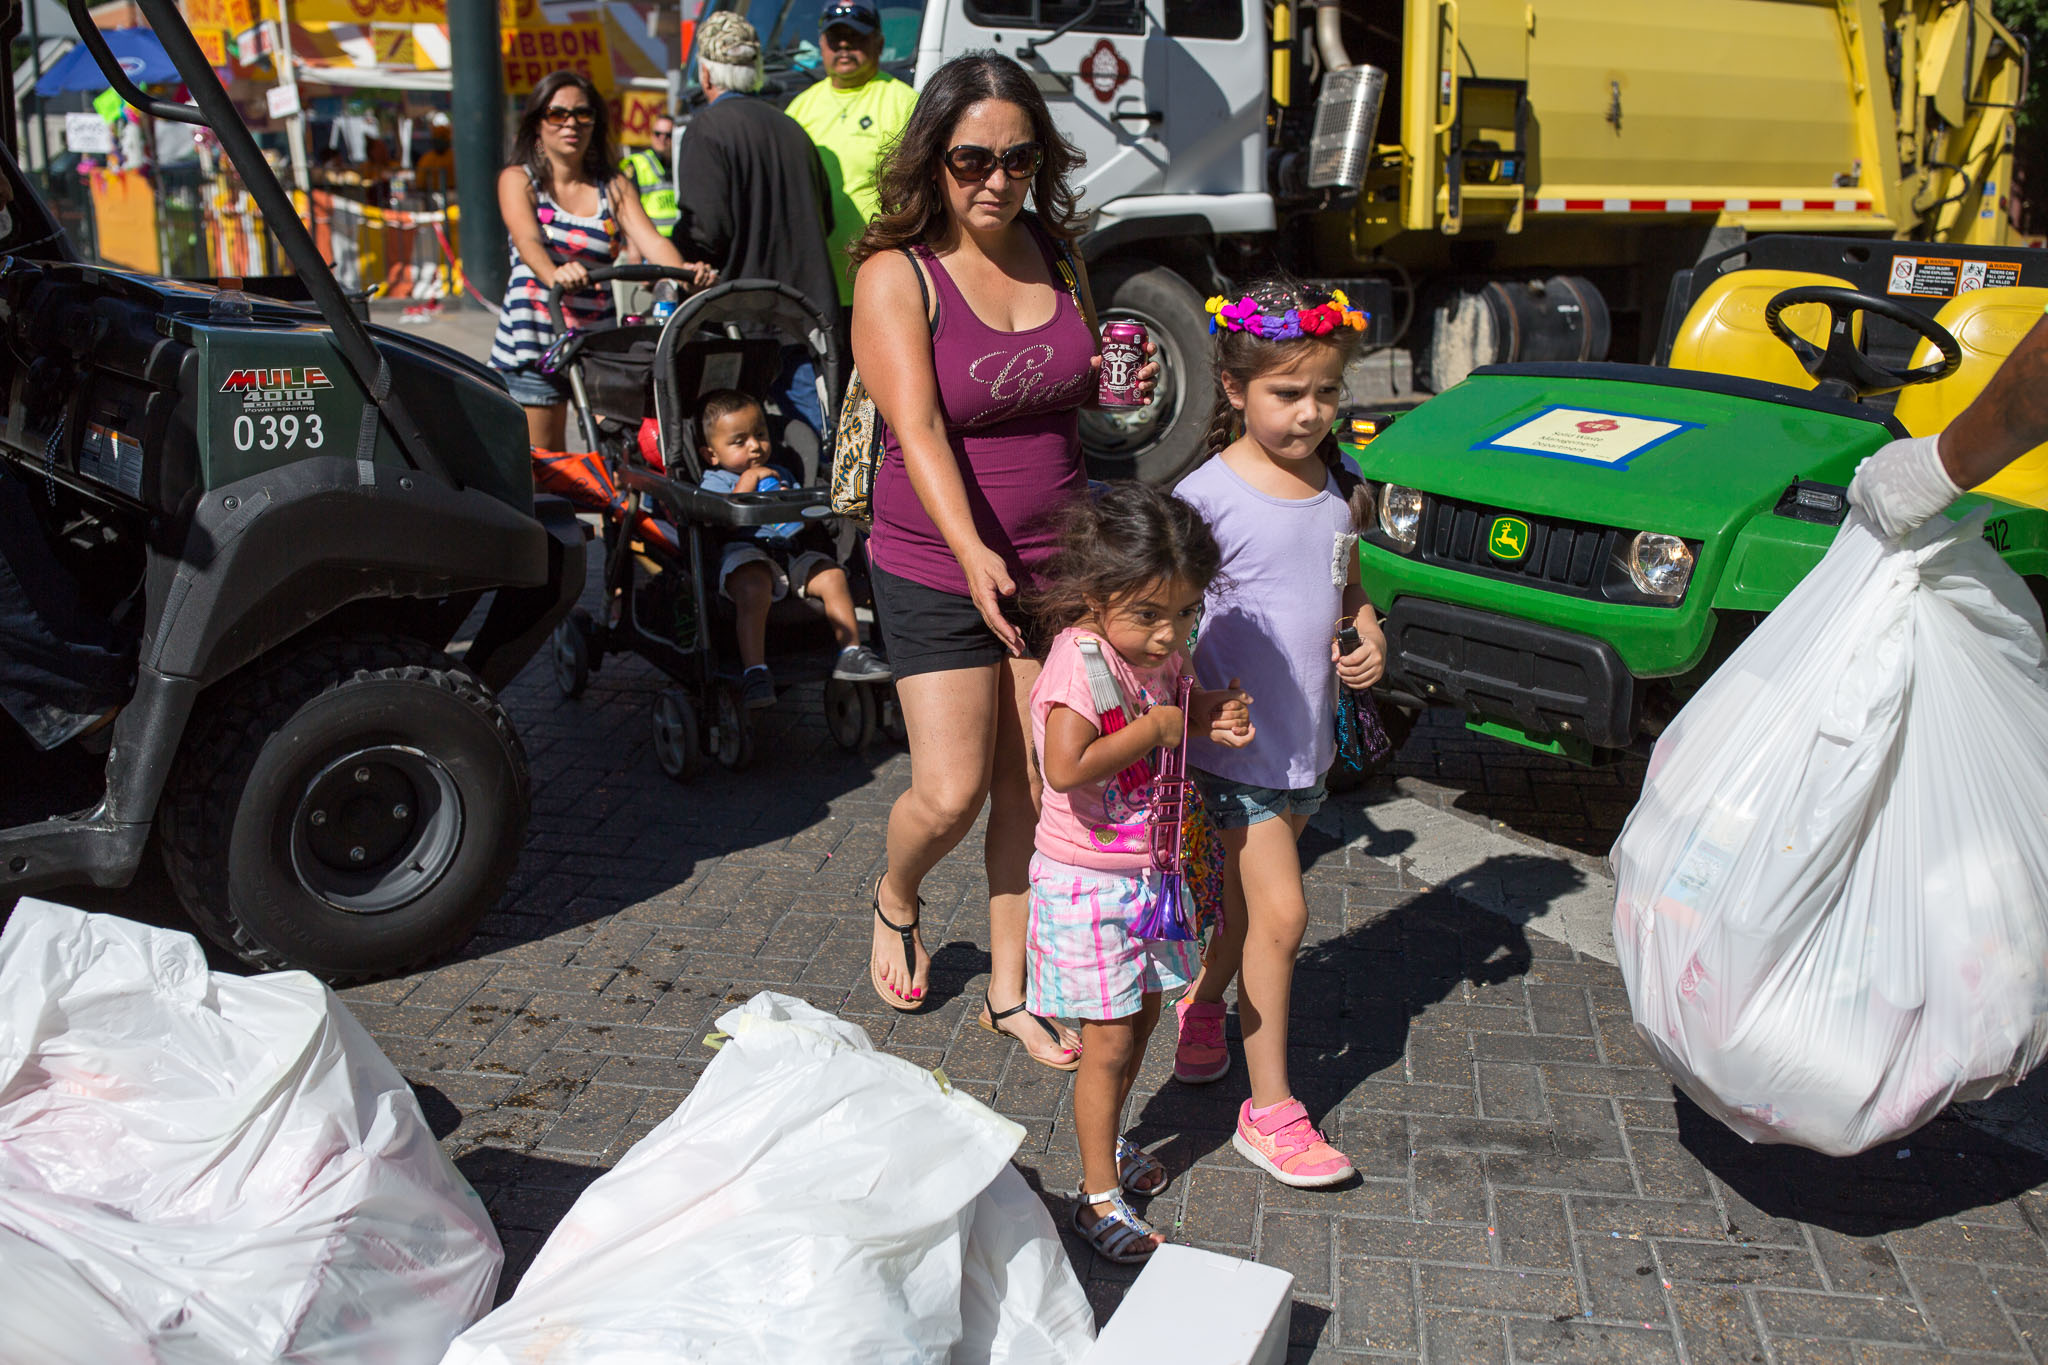 A family attempts to cross Commerce Street as bags of trash and work vehicles surround them. Photo by Scott Ball.